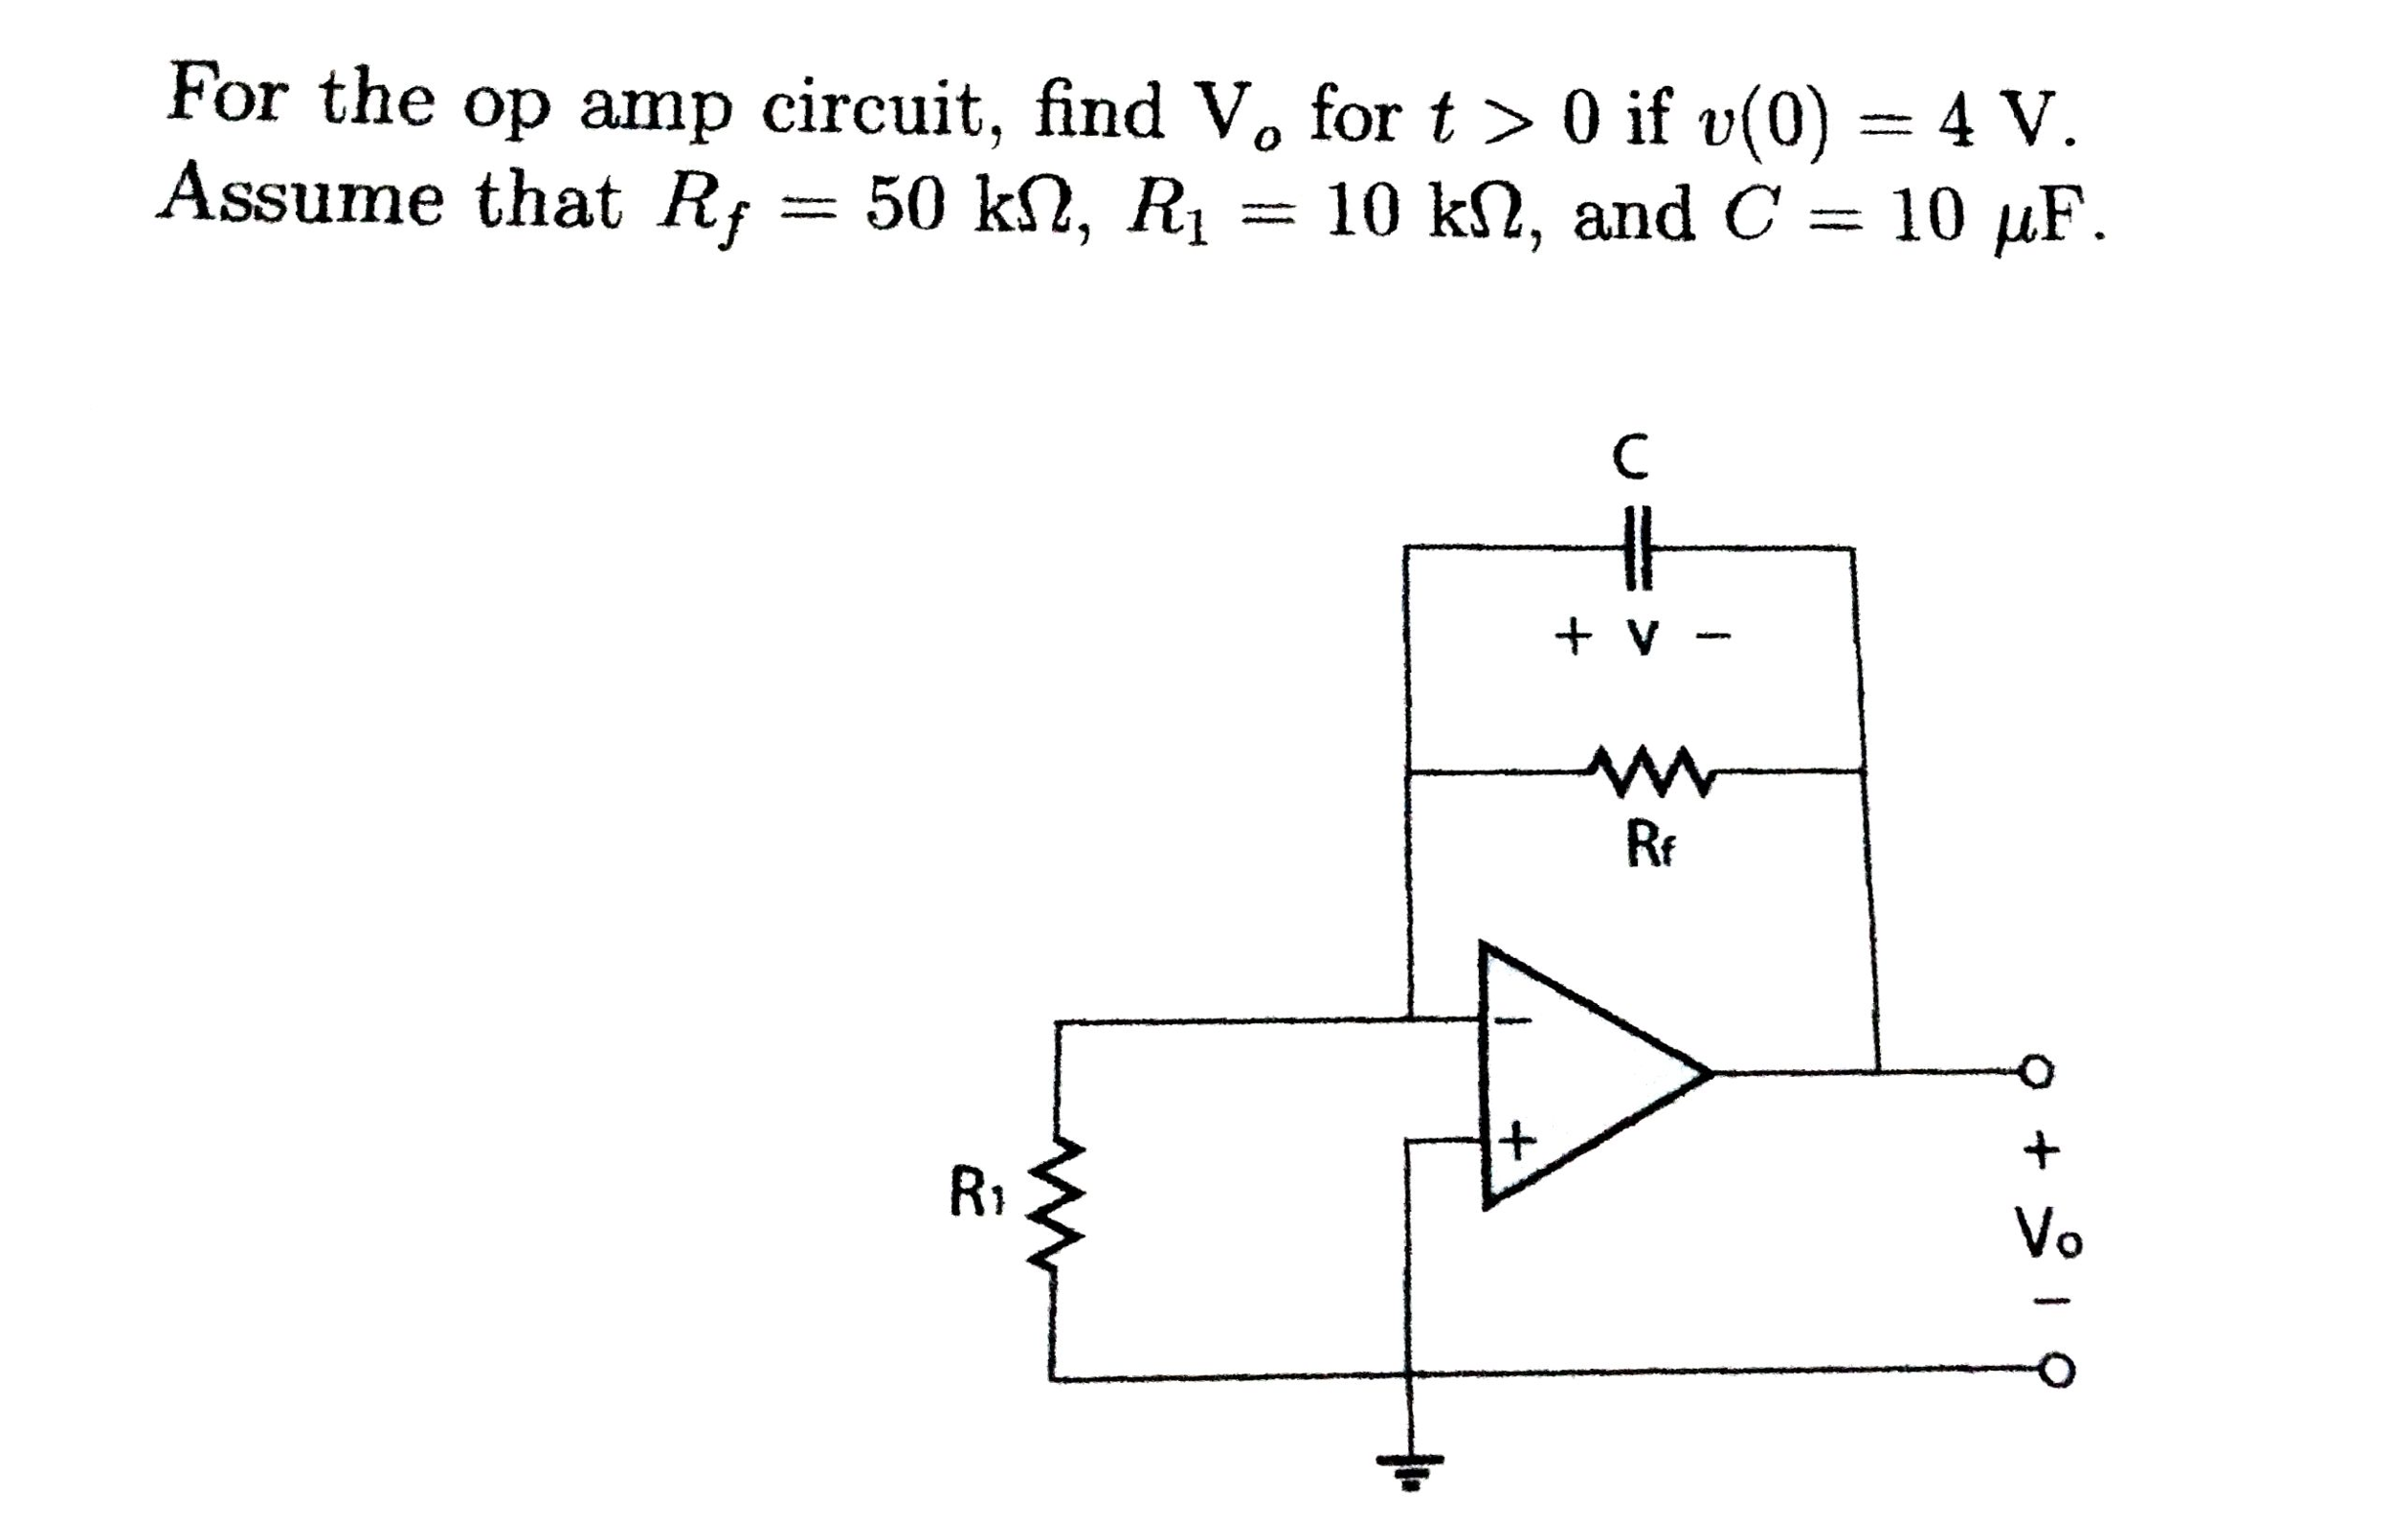 For the op amp circuit, find V0 for t > 0 if v(0)